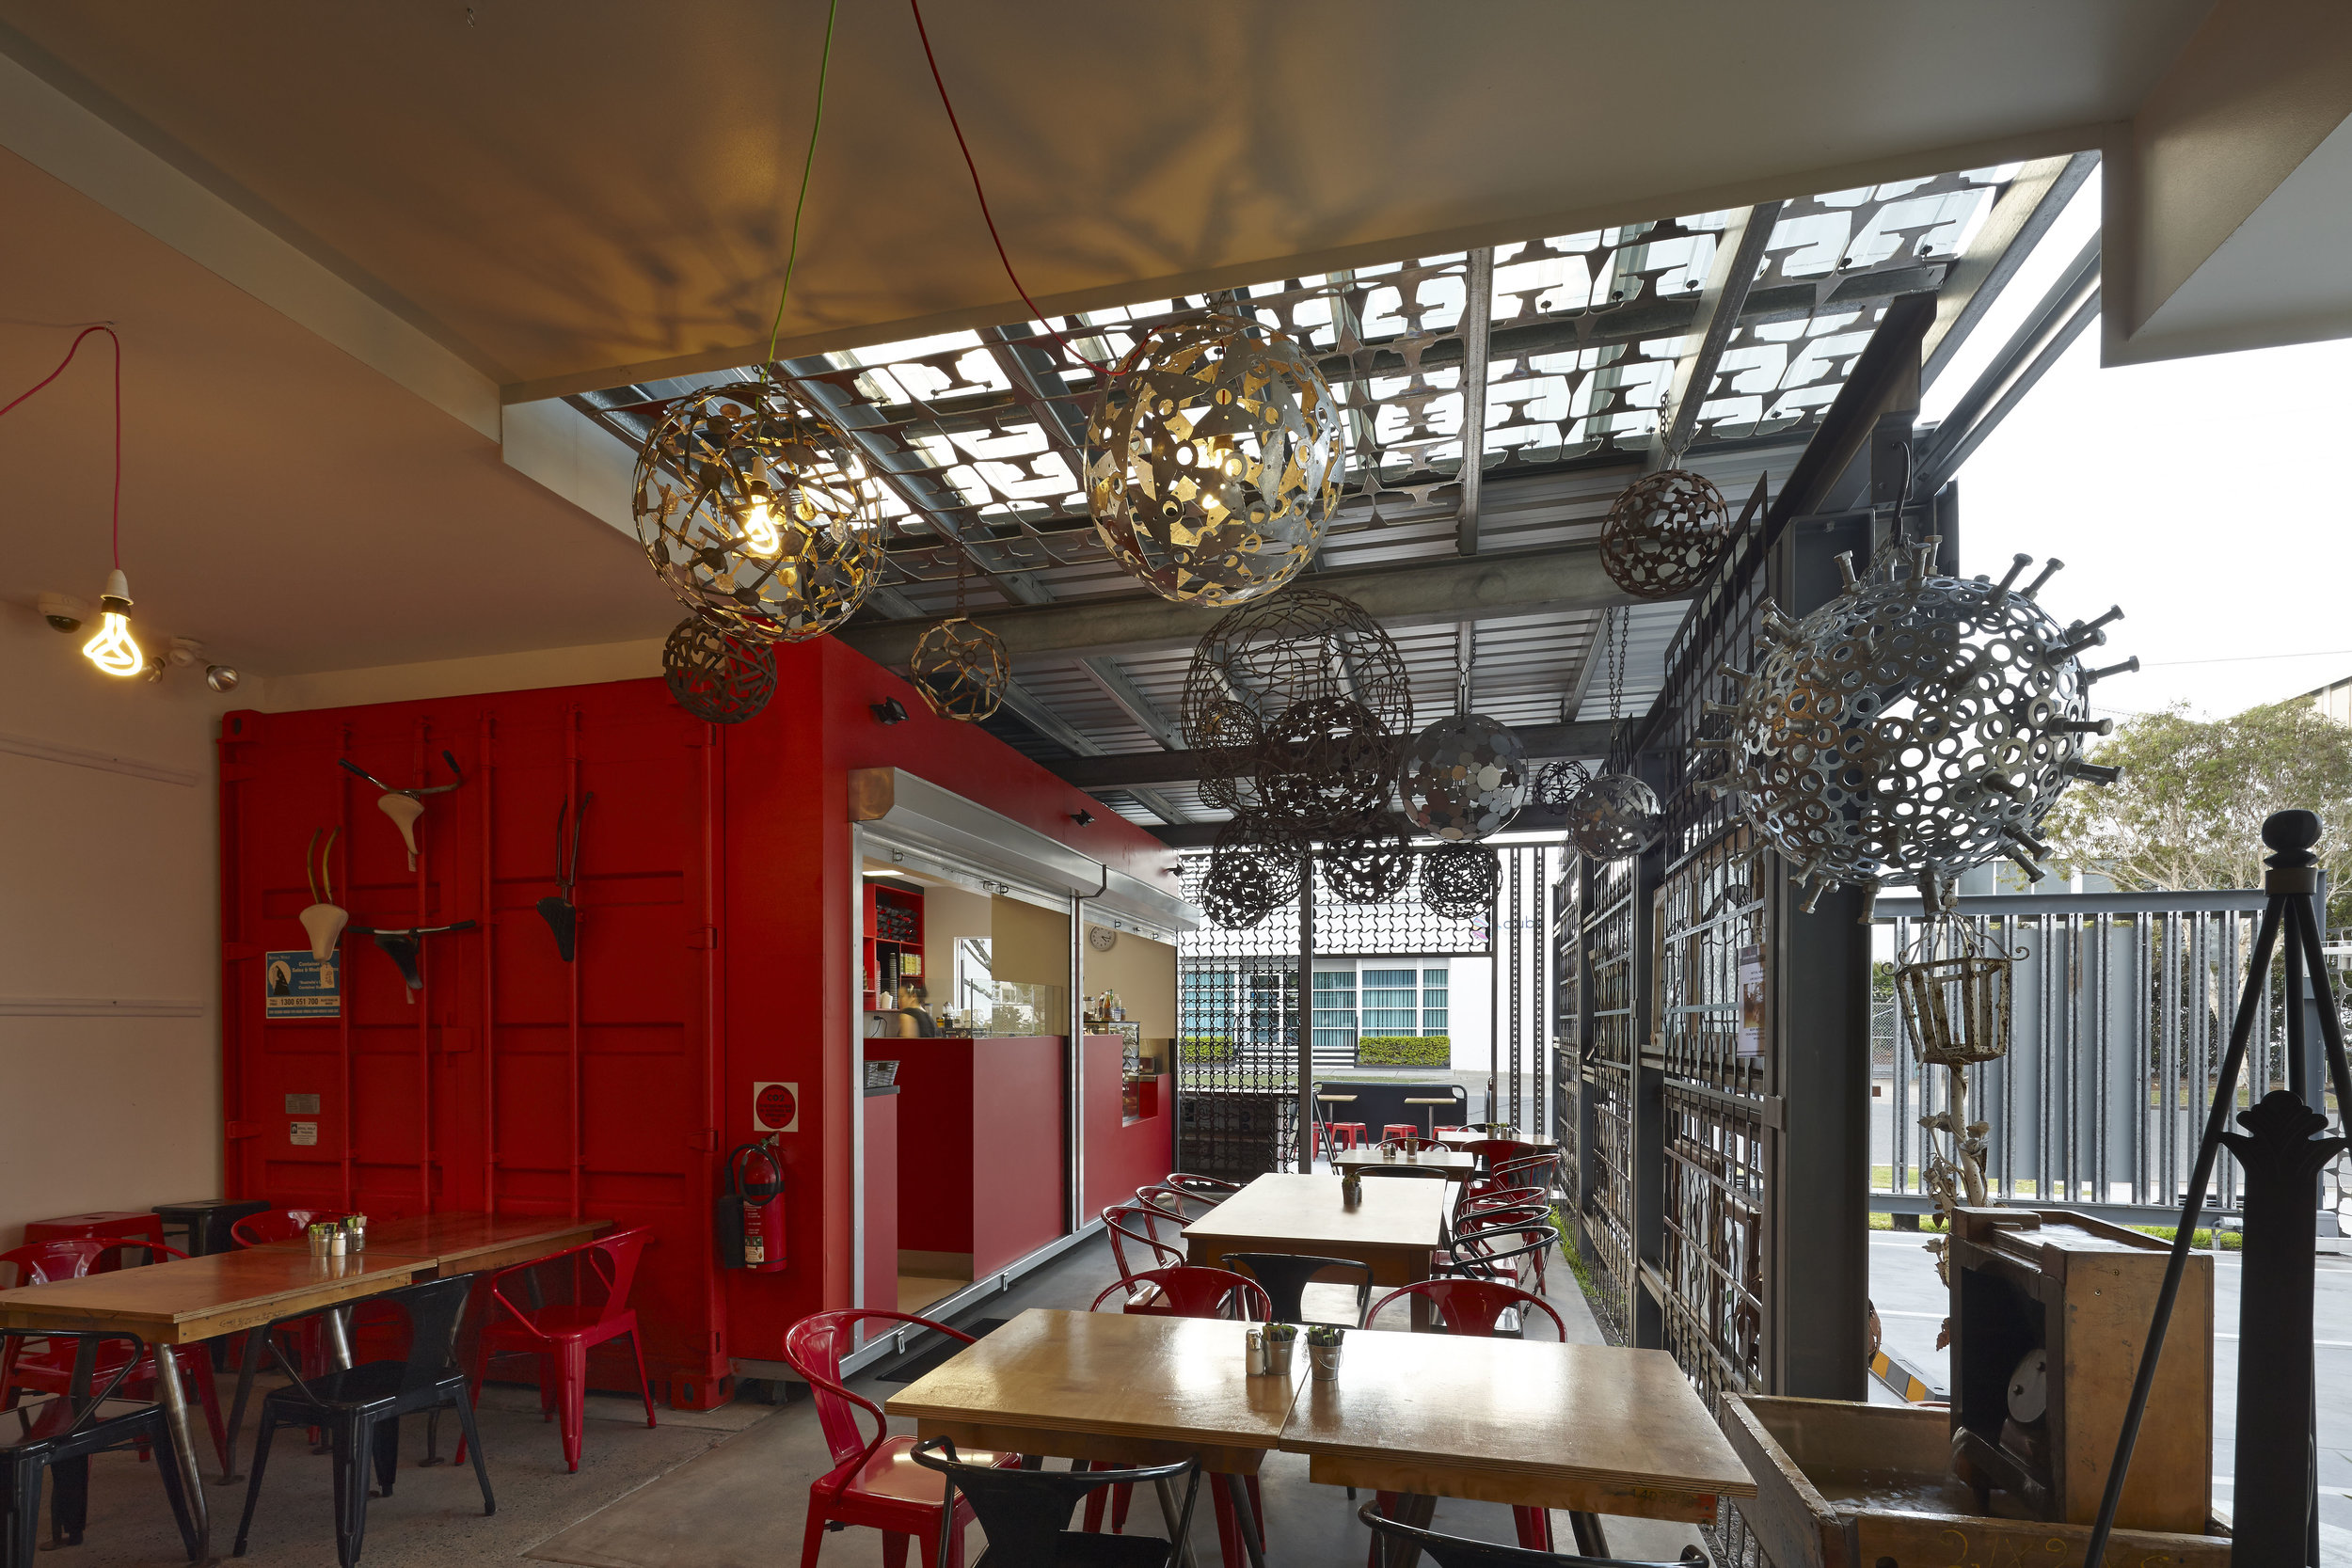 Guymer-bailey-architects-Grand-Ideas-cafe-commercial-04.jpg